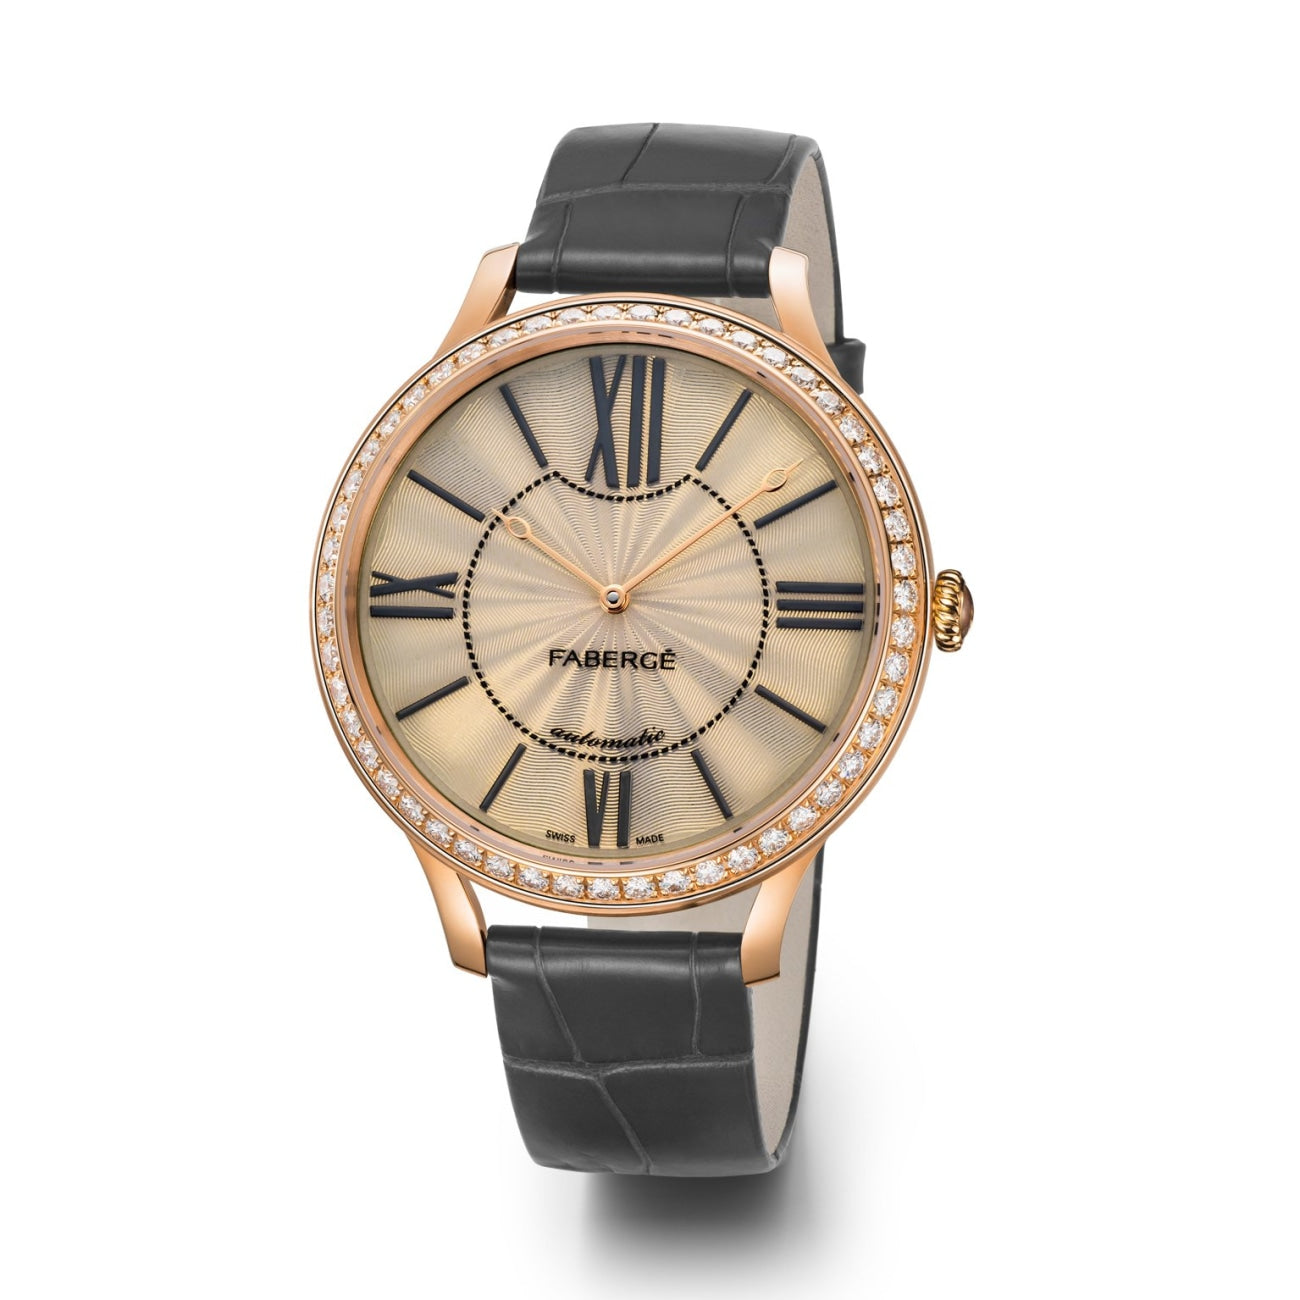 Fabergé Watches - Flirt 39MM 18 Karat Rose Gold - White Opalescent Enamel Dial | Manfredi Jewels